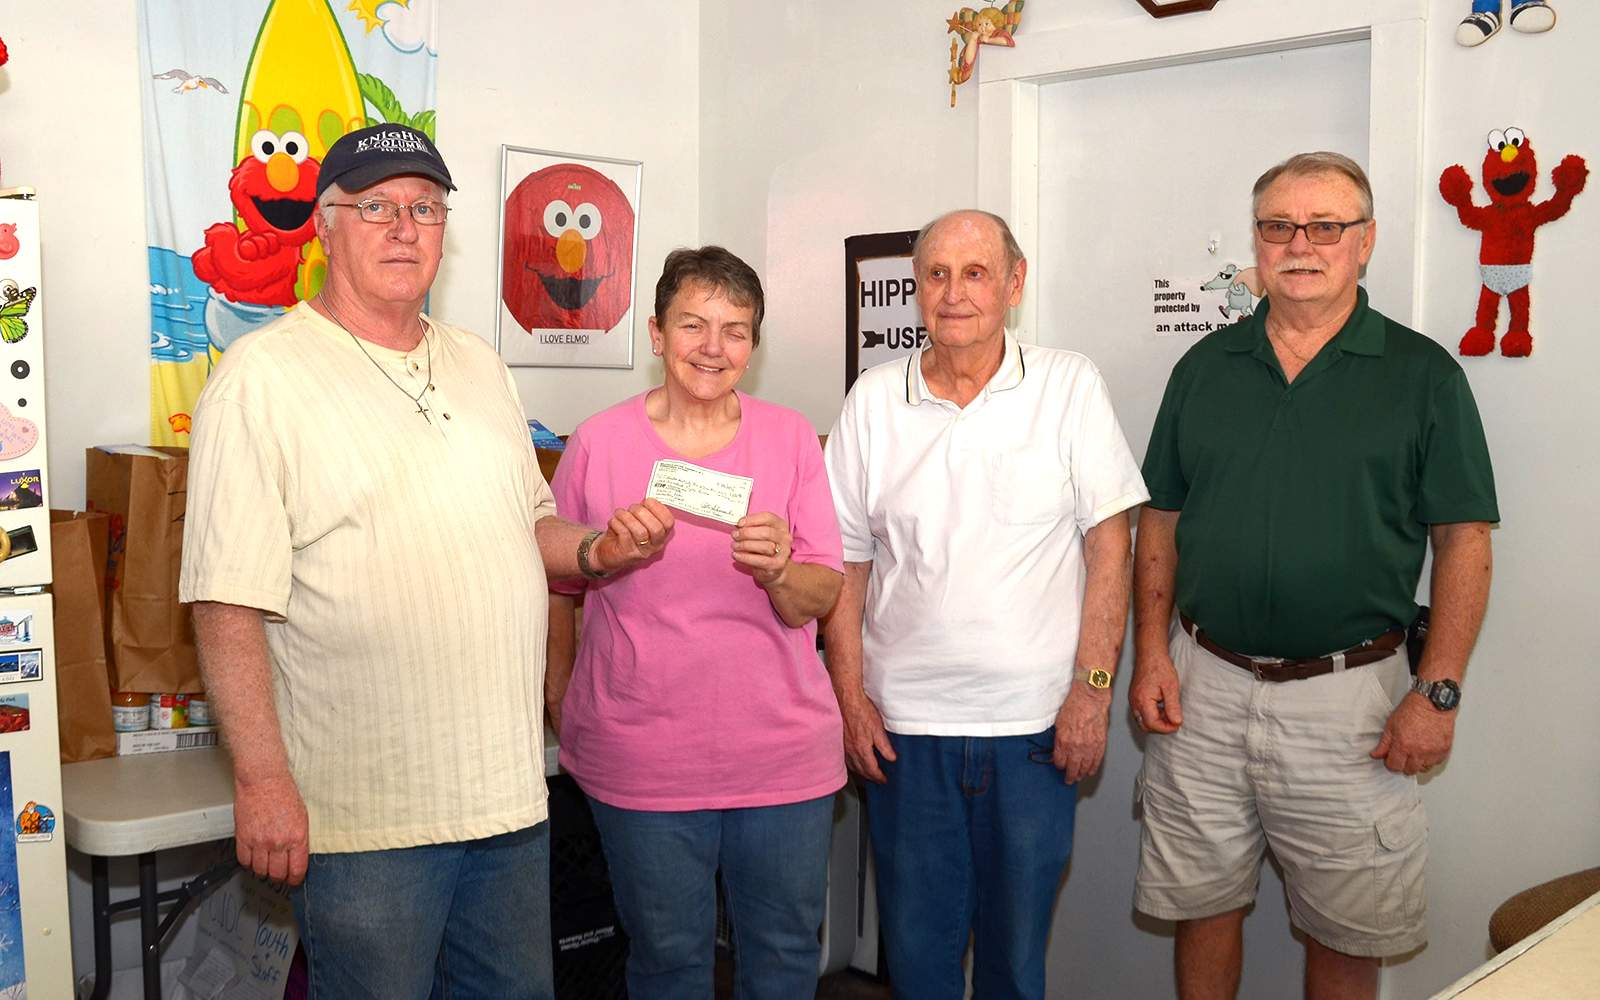 The Knights of Columbus Council 9890, St. Joseph Catholic Church, participated with other chapters in the organization's annual humanitarian project and presented a matching grant of $150 to the Benton/West City Ministerial Alliance. Pictured from left to right are Mike Young, Grand Knight; Vickie Seagle, pantry coordinator; Jim Chady, life member; and Dennis Kinkade, Deputy Grand Knight.